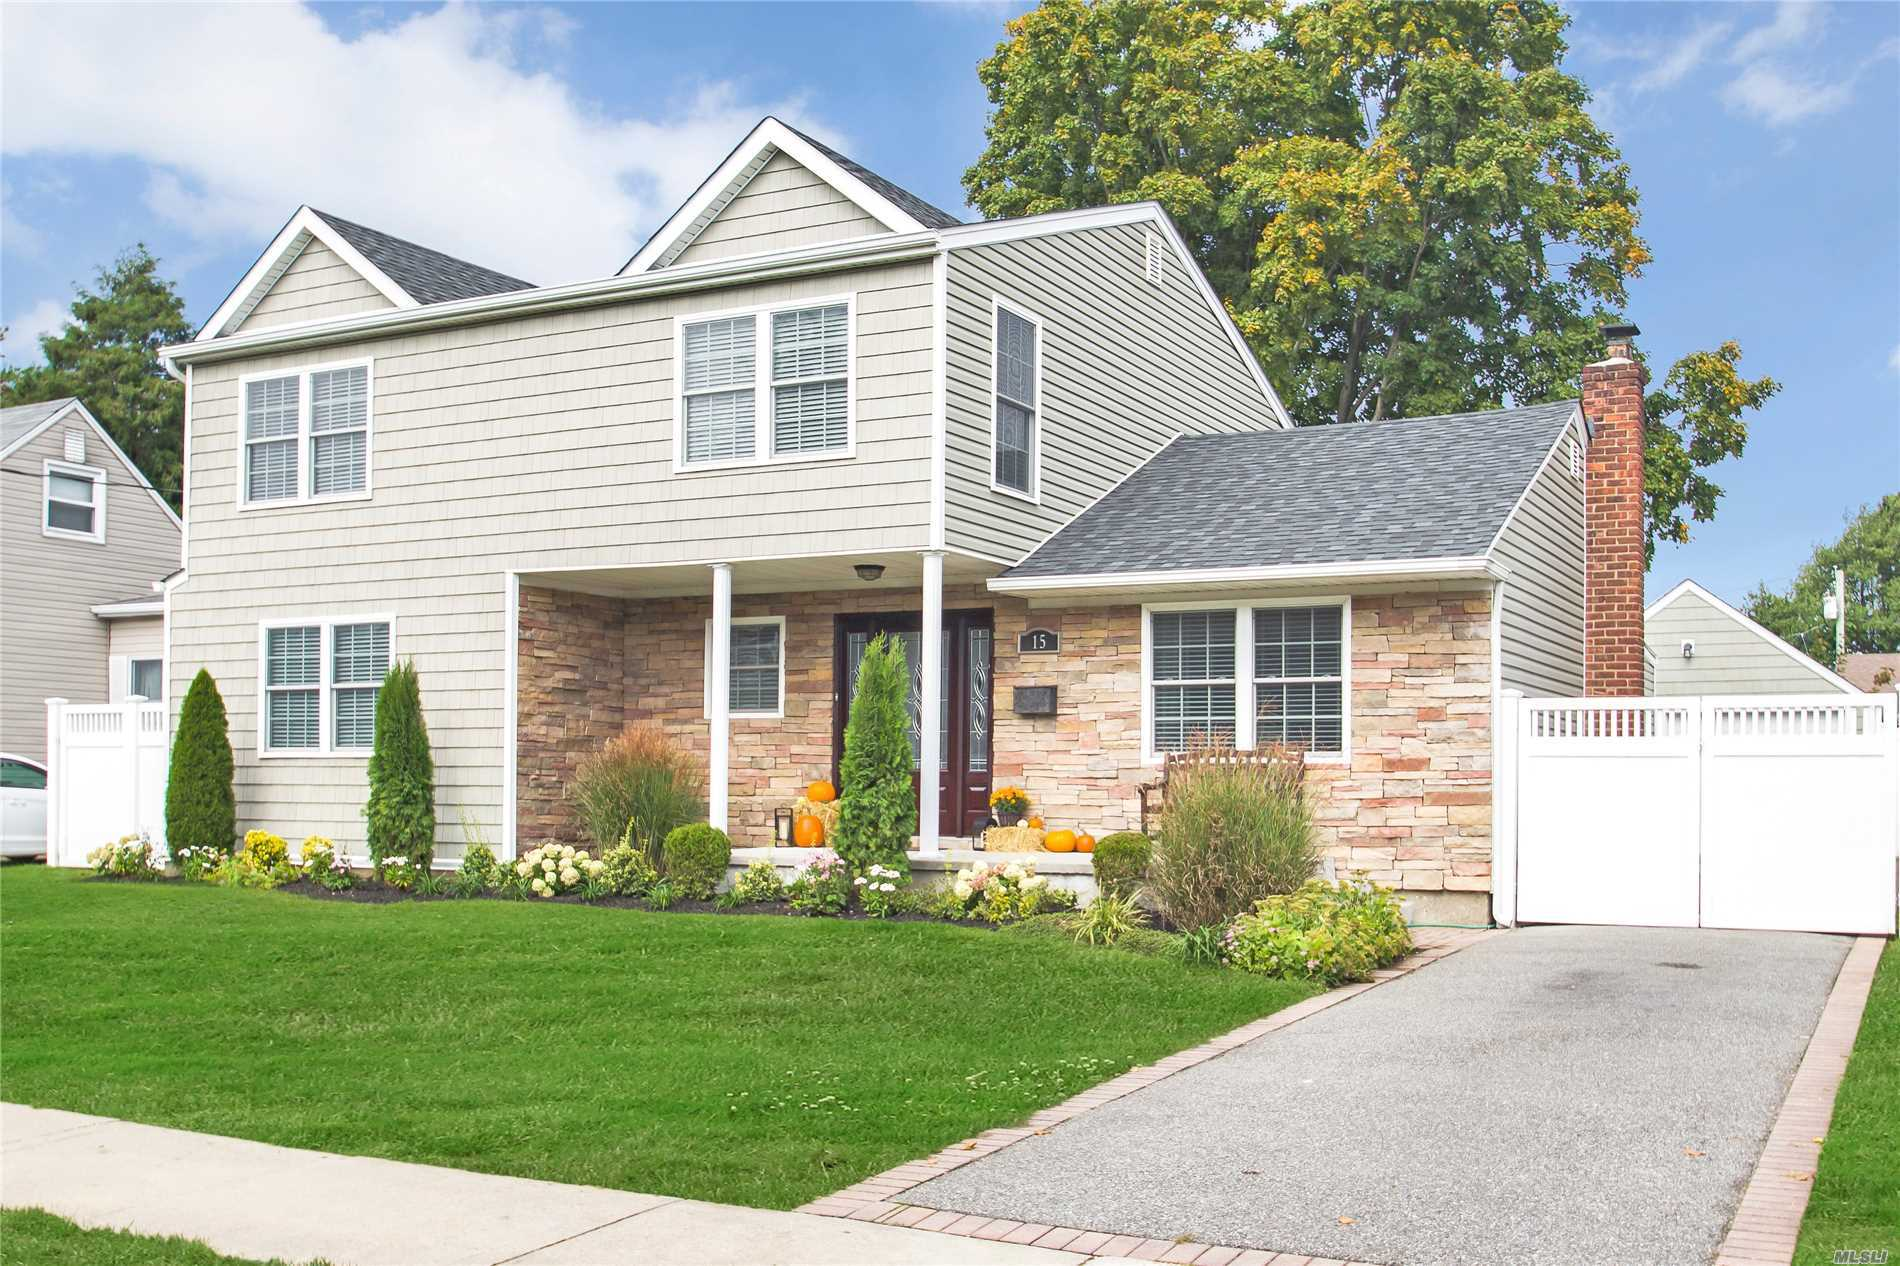 15 Martin Rd S - Bethpage, New York